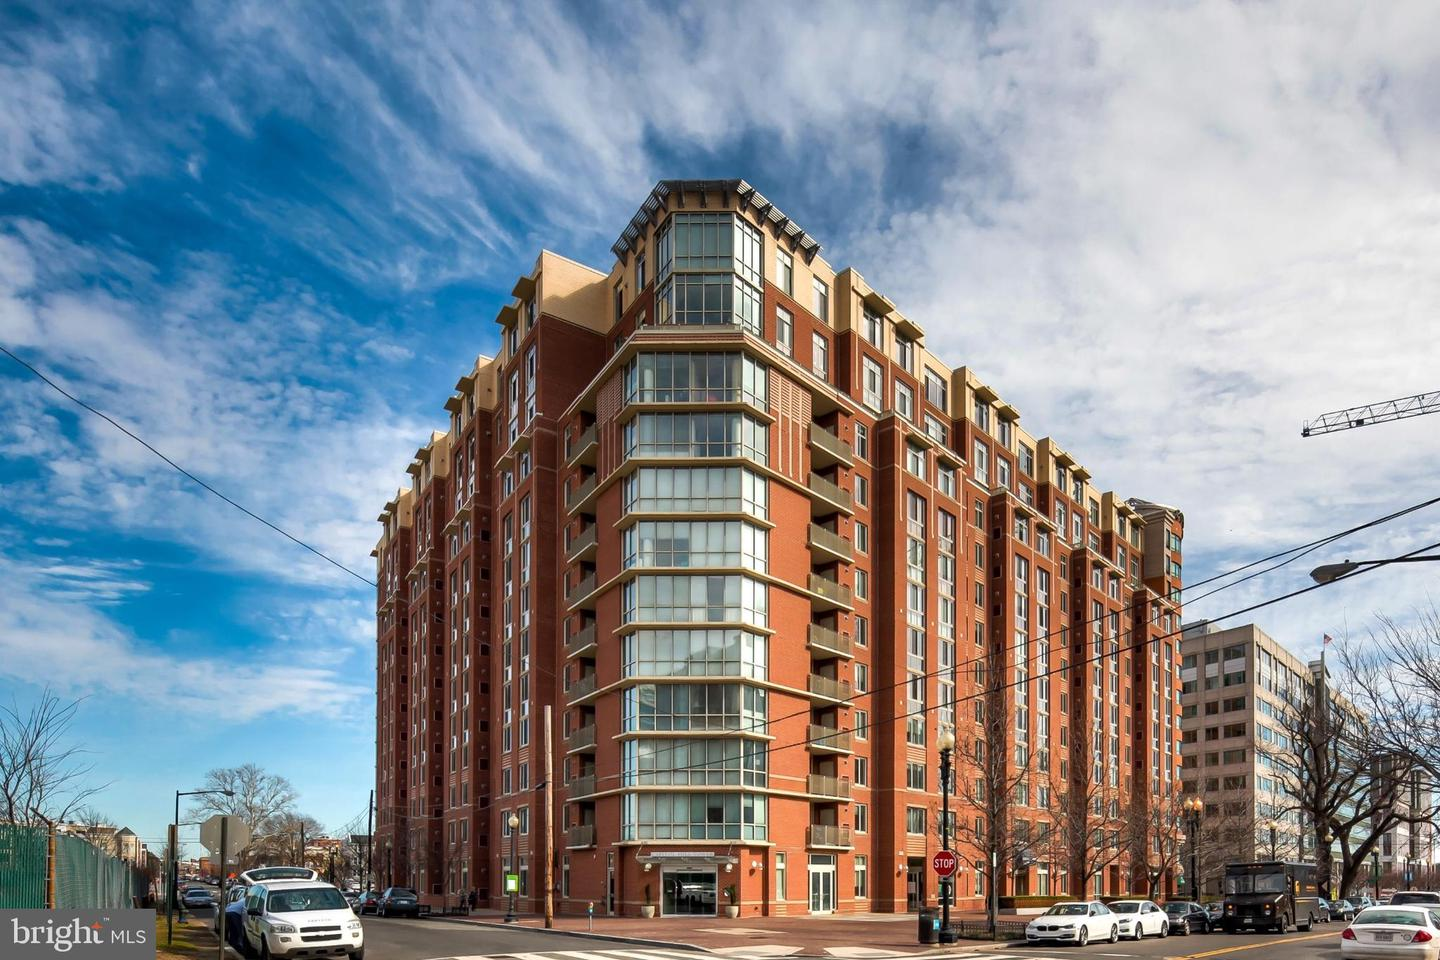 1000 New Jersey Ave Avenue SE #715 - Washington, District Of Columbia 20003